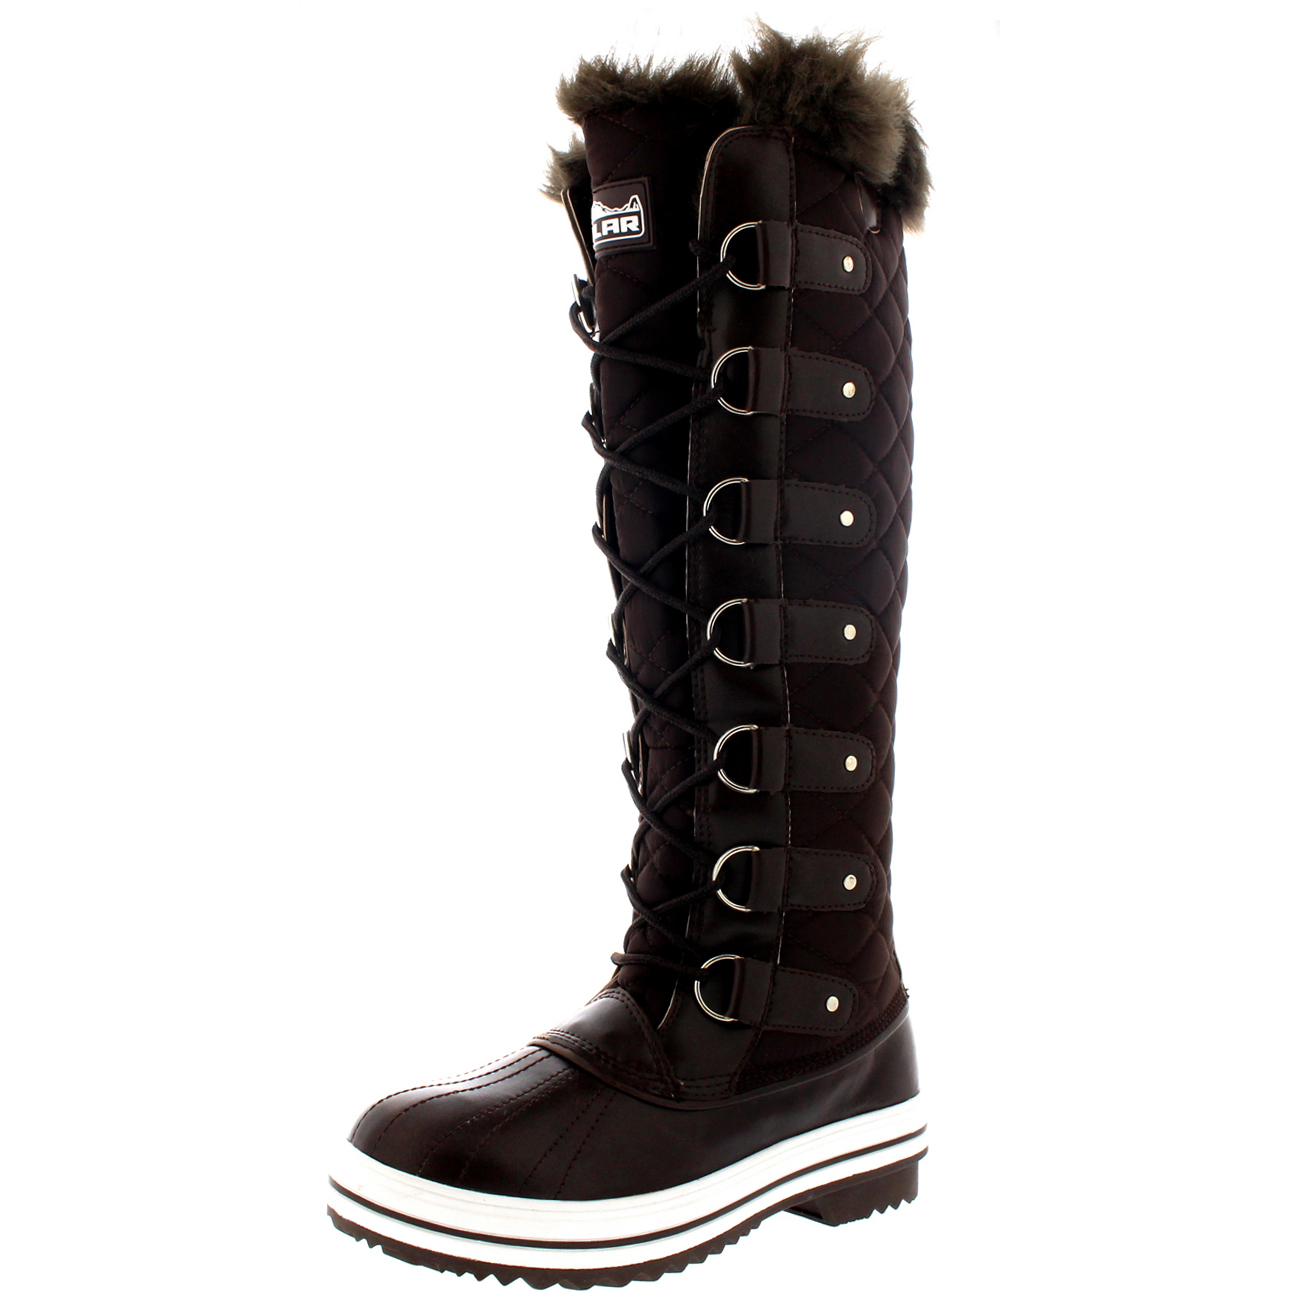 47f4f22a10e Womens Quilted Knee High Duck Fur Lined Rain Lace Up Muck Snow ...